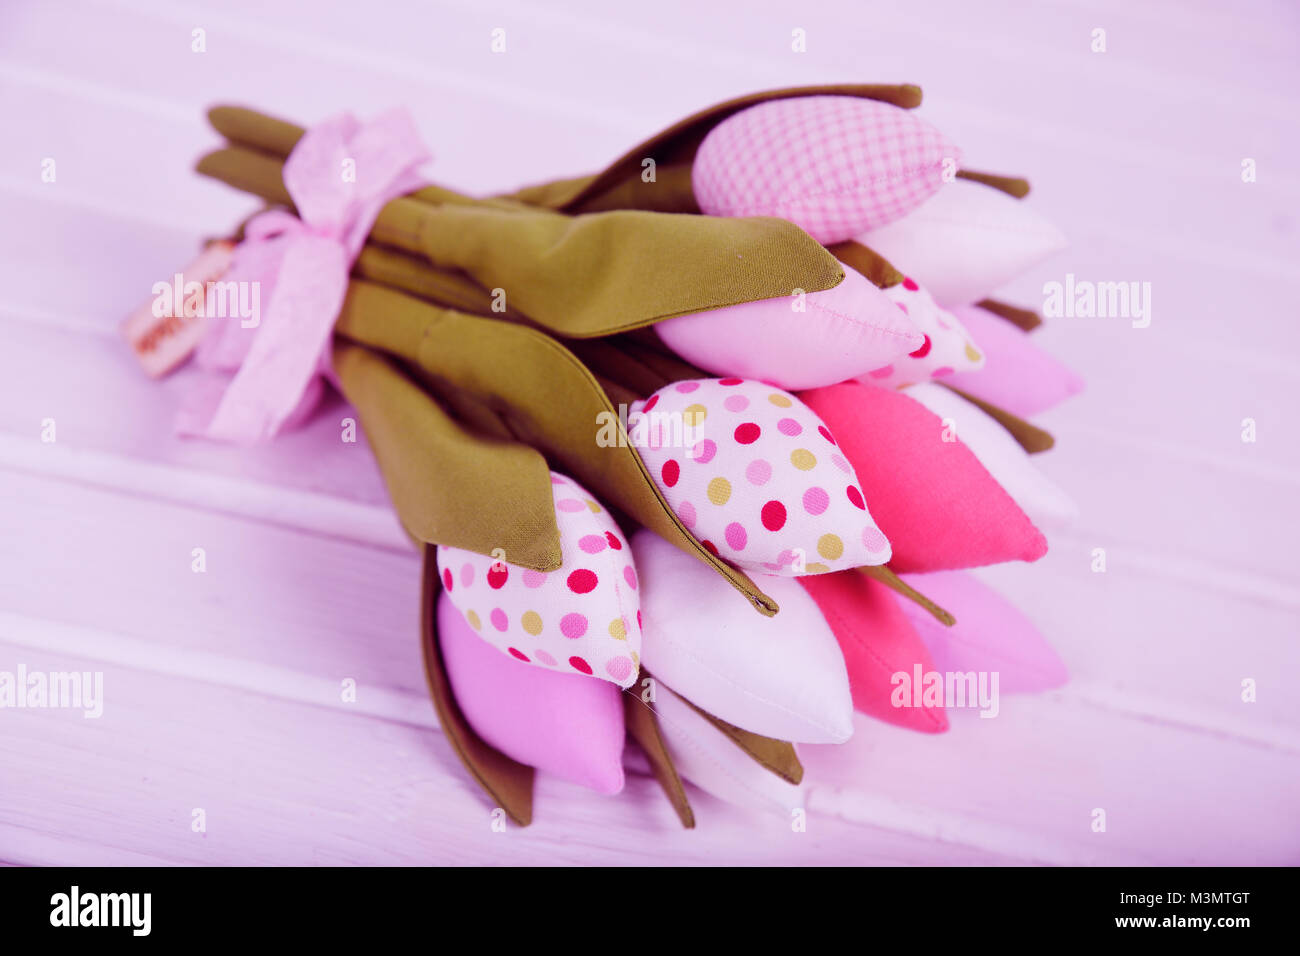 bouquet of beautiful toy tulips close-up - Stock Image